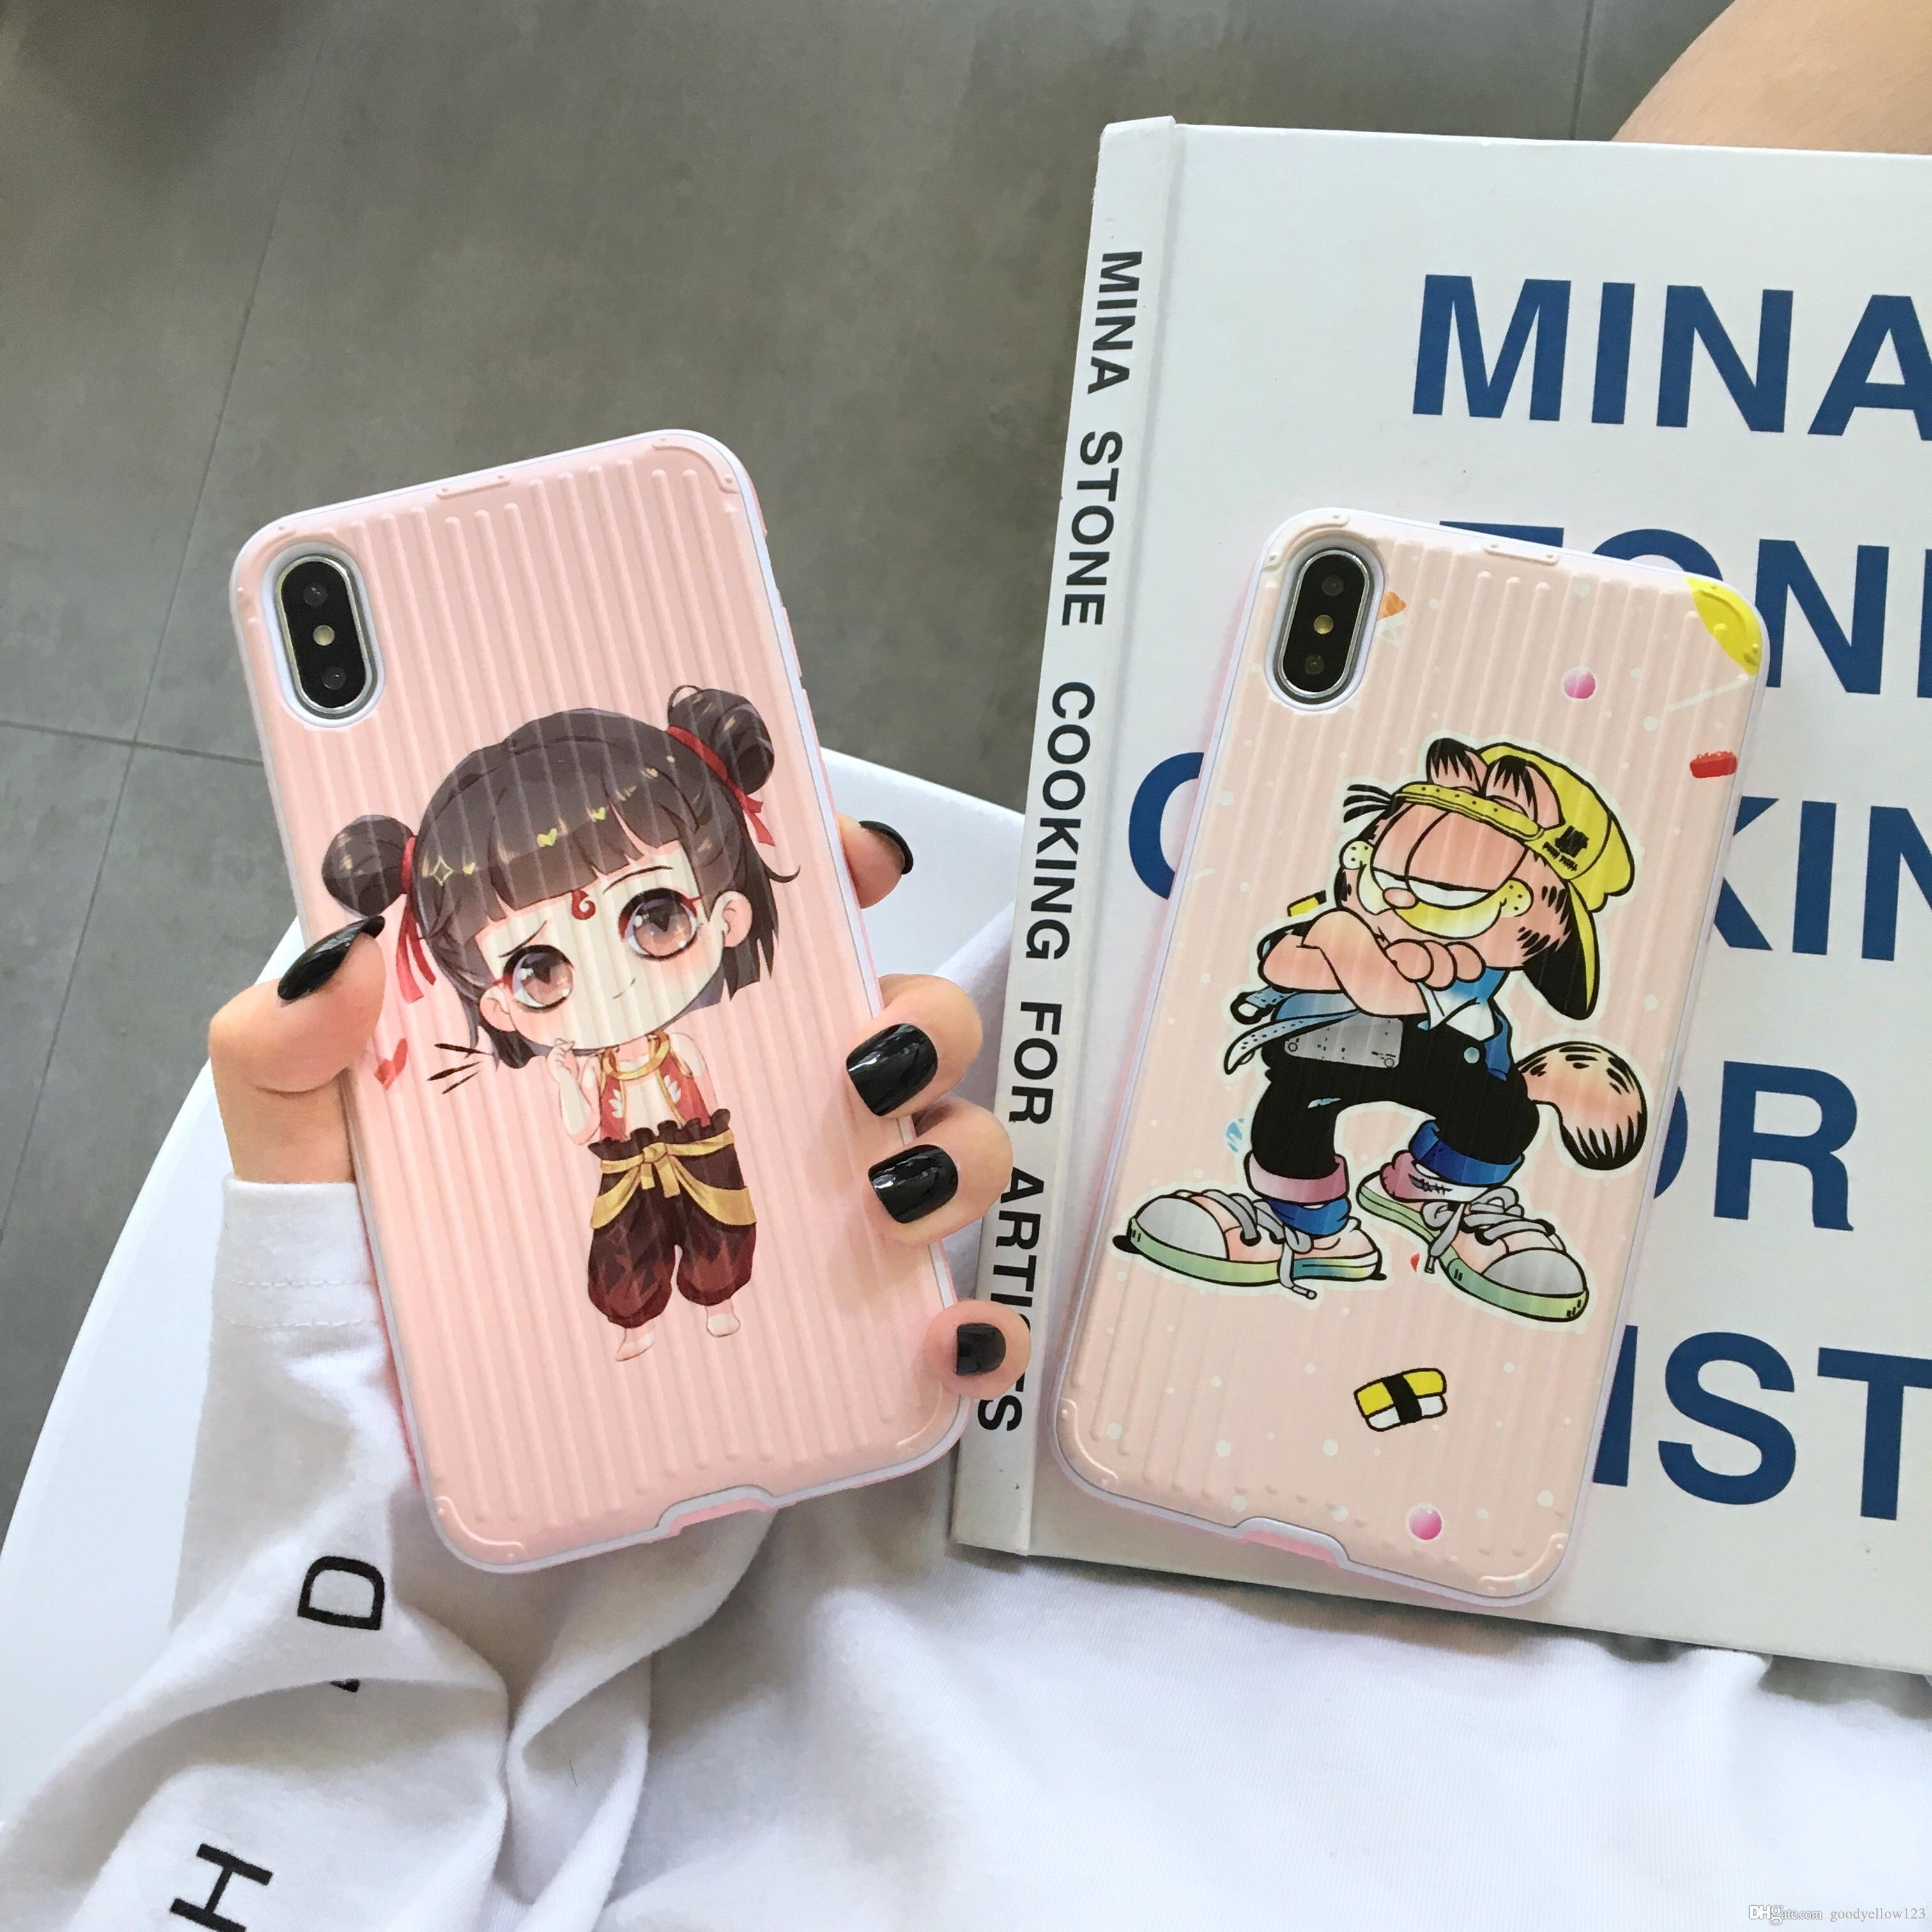 Cute Cartoon Non Slip Surface Classic Nezha Garfield Shockproof Case Iphone 11 X Xr Xs Max 8 7 Plus 6 6s Plus Leather Cell Phone Cases Phones Cases From Goodyellow123 5 03 Dhgate Com